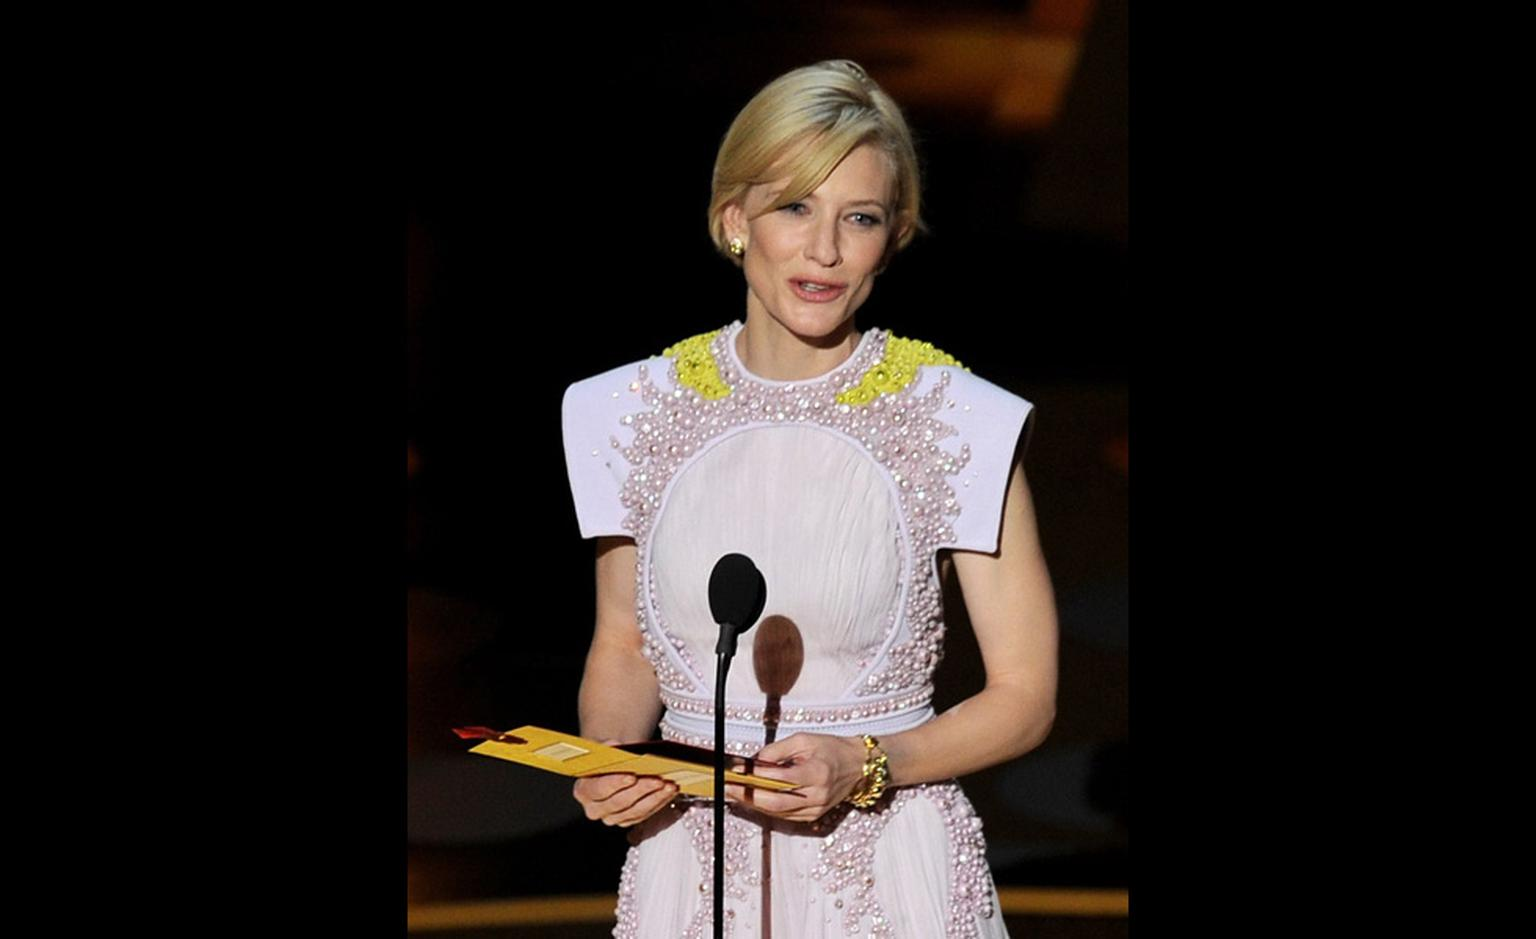 At the Academy Awards, Cate Blanchett wears vintage Van Cleef & Arpels yellow gold jewellery. Photo by Kevin Winter Getty Images